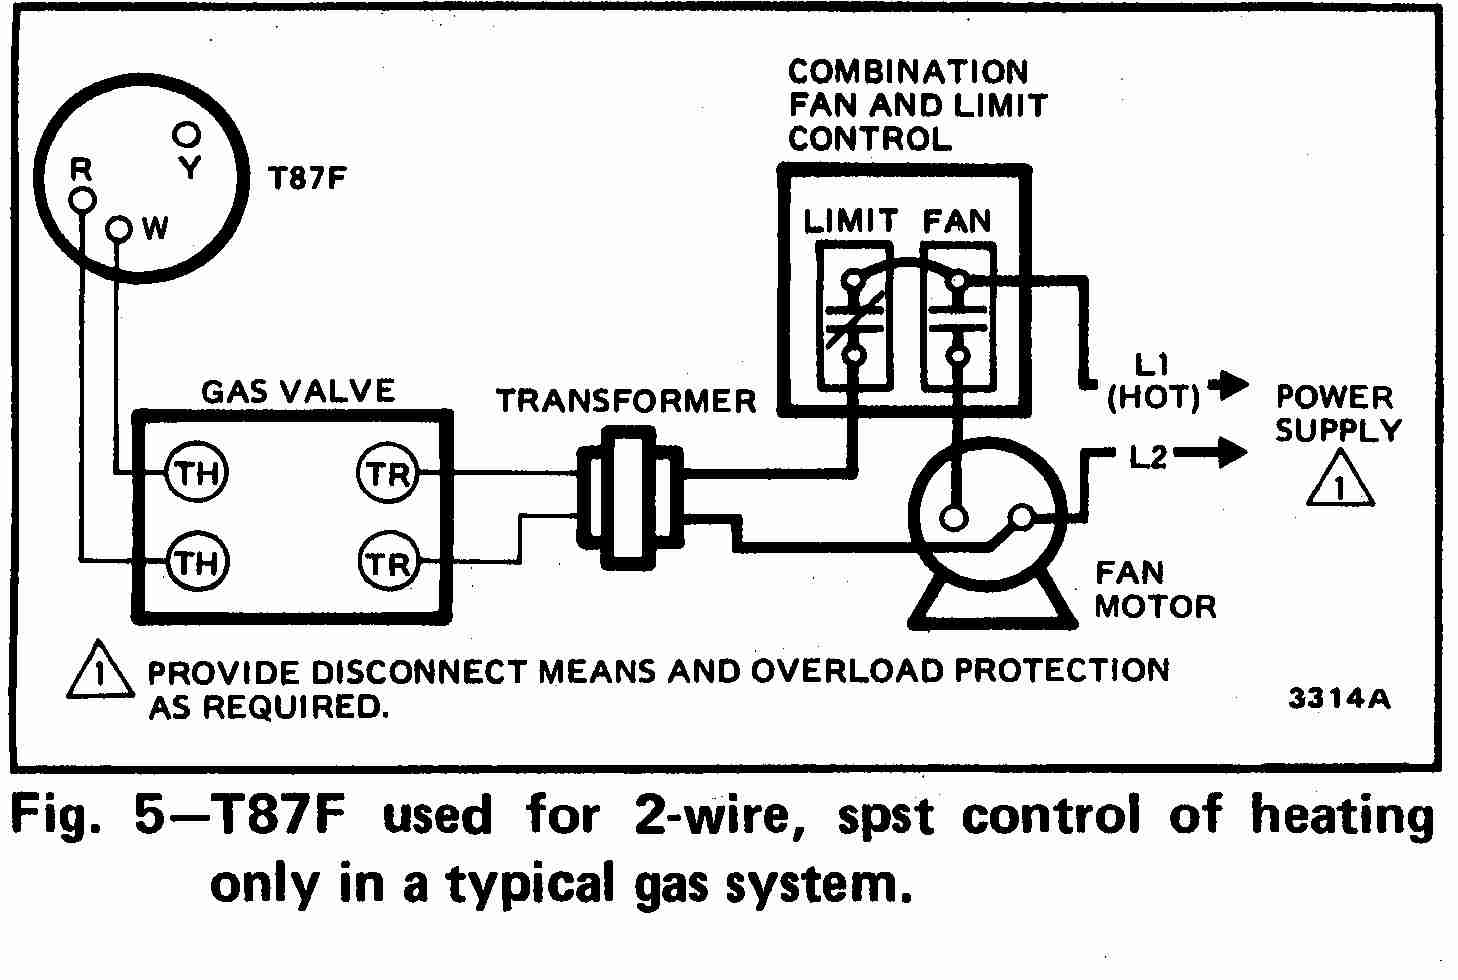 Modine Unit Heater Wiring Diagram | Wiring Diagram - Modine Gas Heater Wiring Diagram